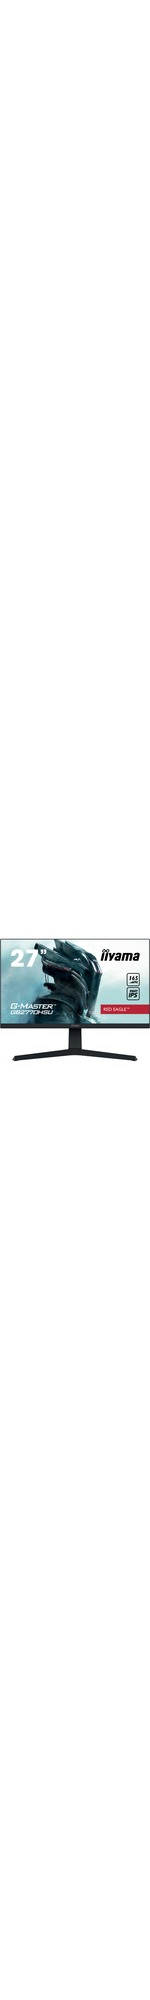 iiyama Red Eagle G-Master GB2770HSU-B1 27And#34; Full HD 165Hz LED LCD Monitor - 16:9 - Matte Black